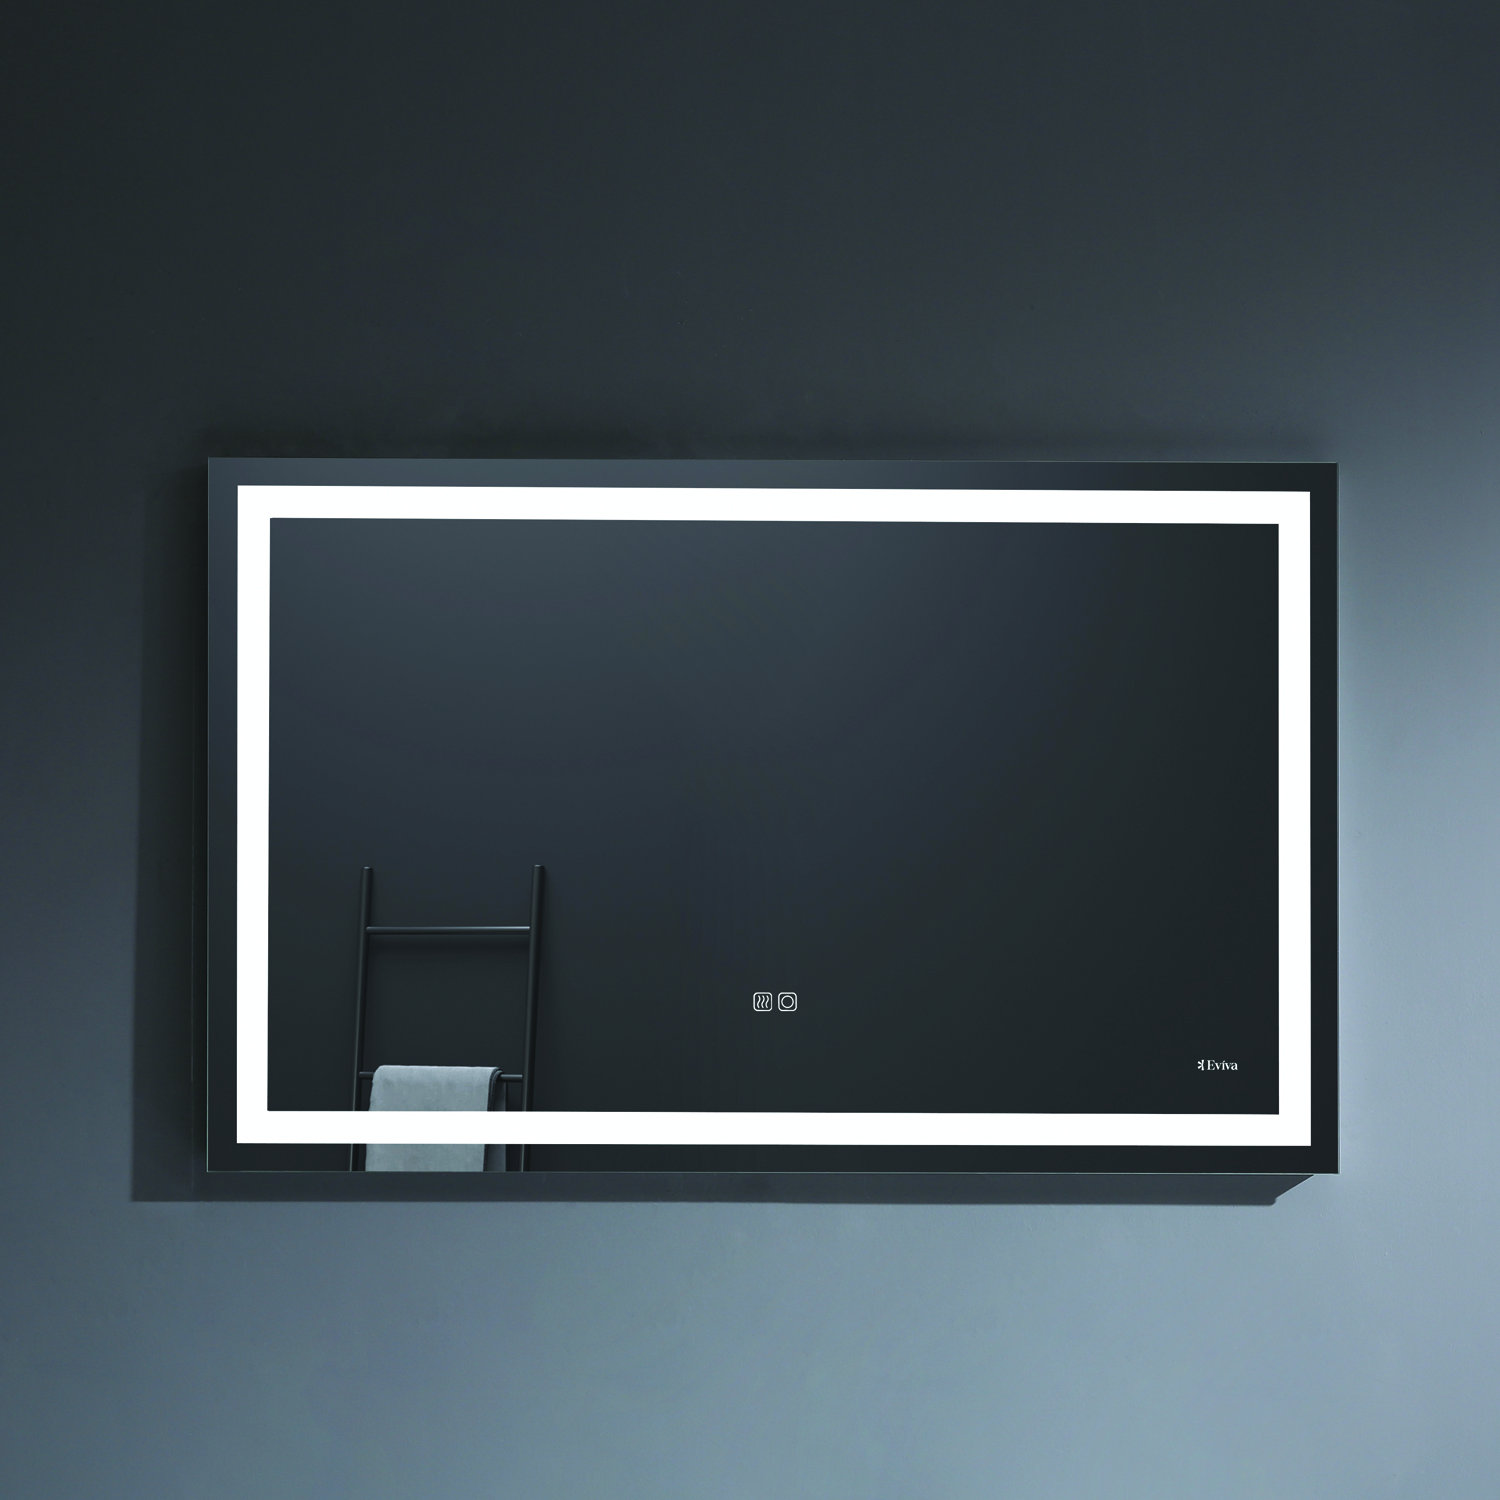 EVMR34 48X30 LED A Main - Eviva EVMR34-48X30-LED Lite Wall Mounted Modern Bathroom Vanity Backlit Lighted LED Mirror